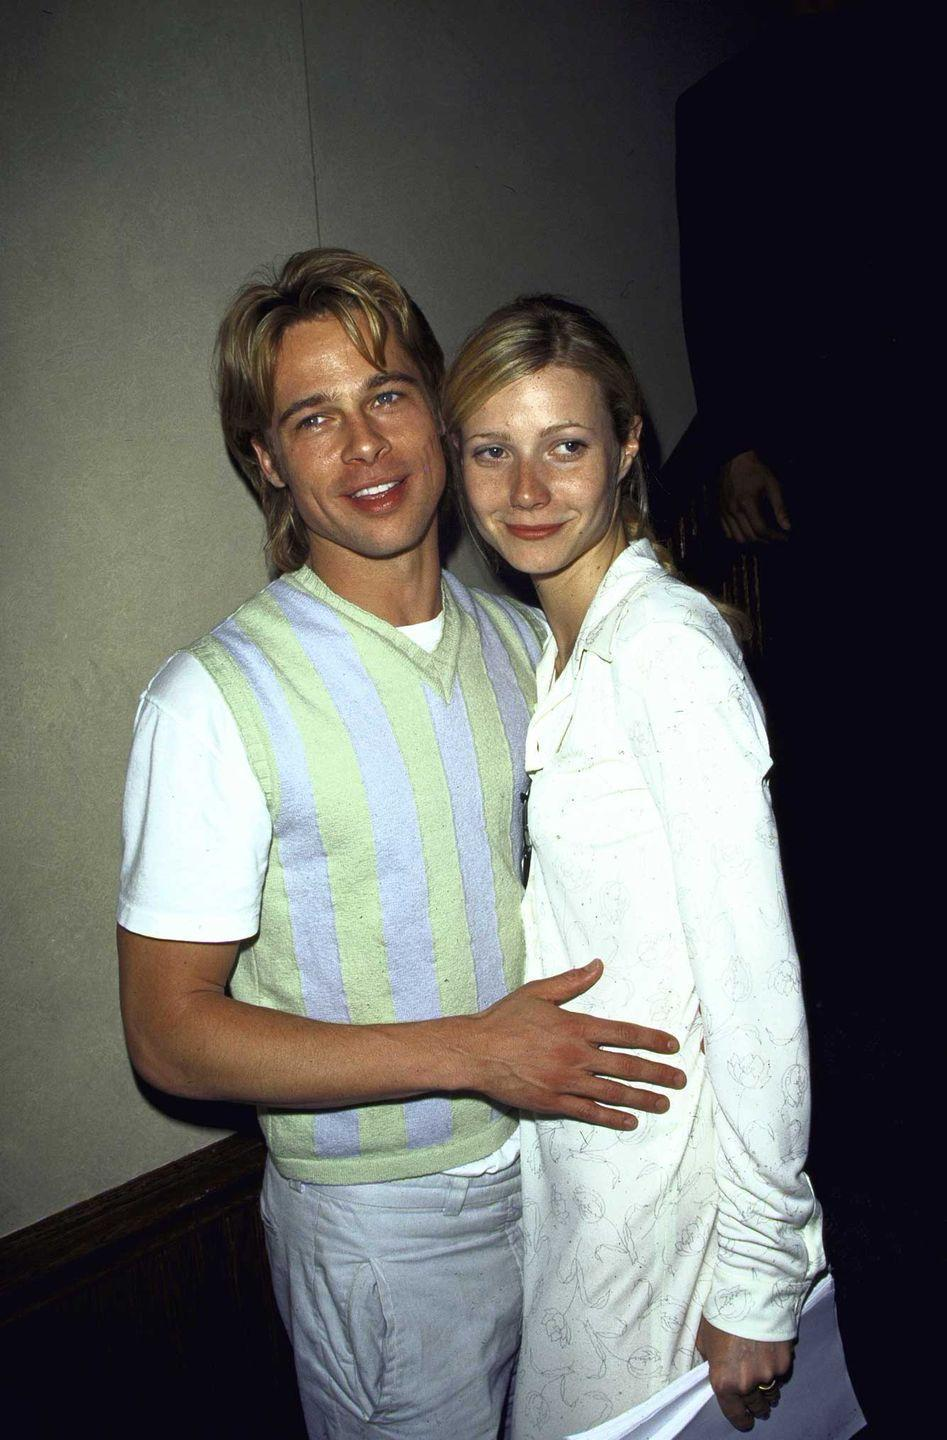 <p>Brad Pitt and Gwyneth Paltrow seen at the premiere of <em>The Pallbearer</em>. The couple, seen here in 1996, was engaged but never made it to the altar. </p>